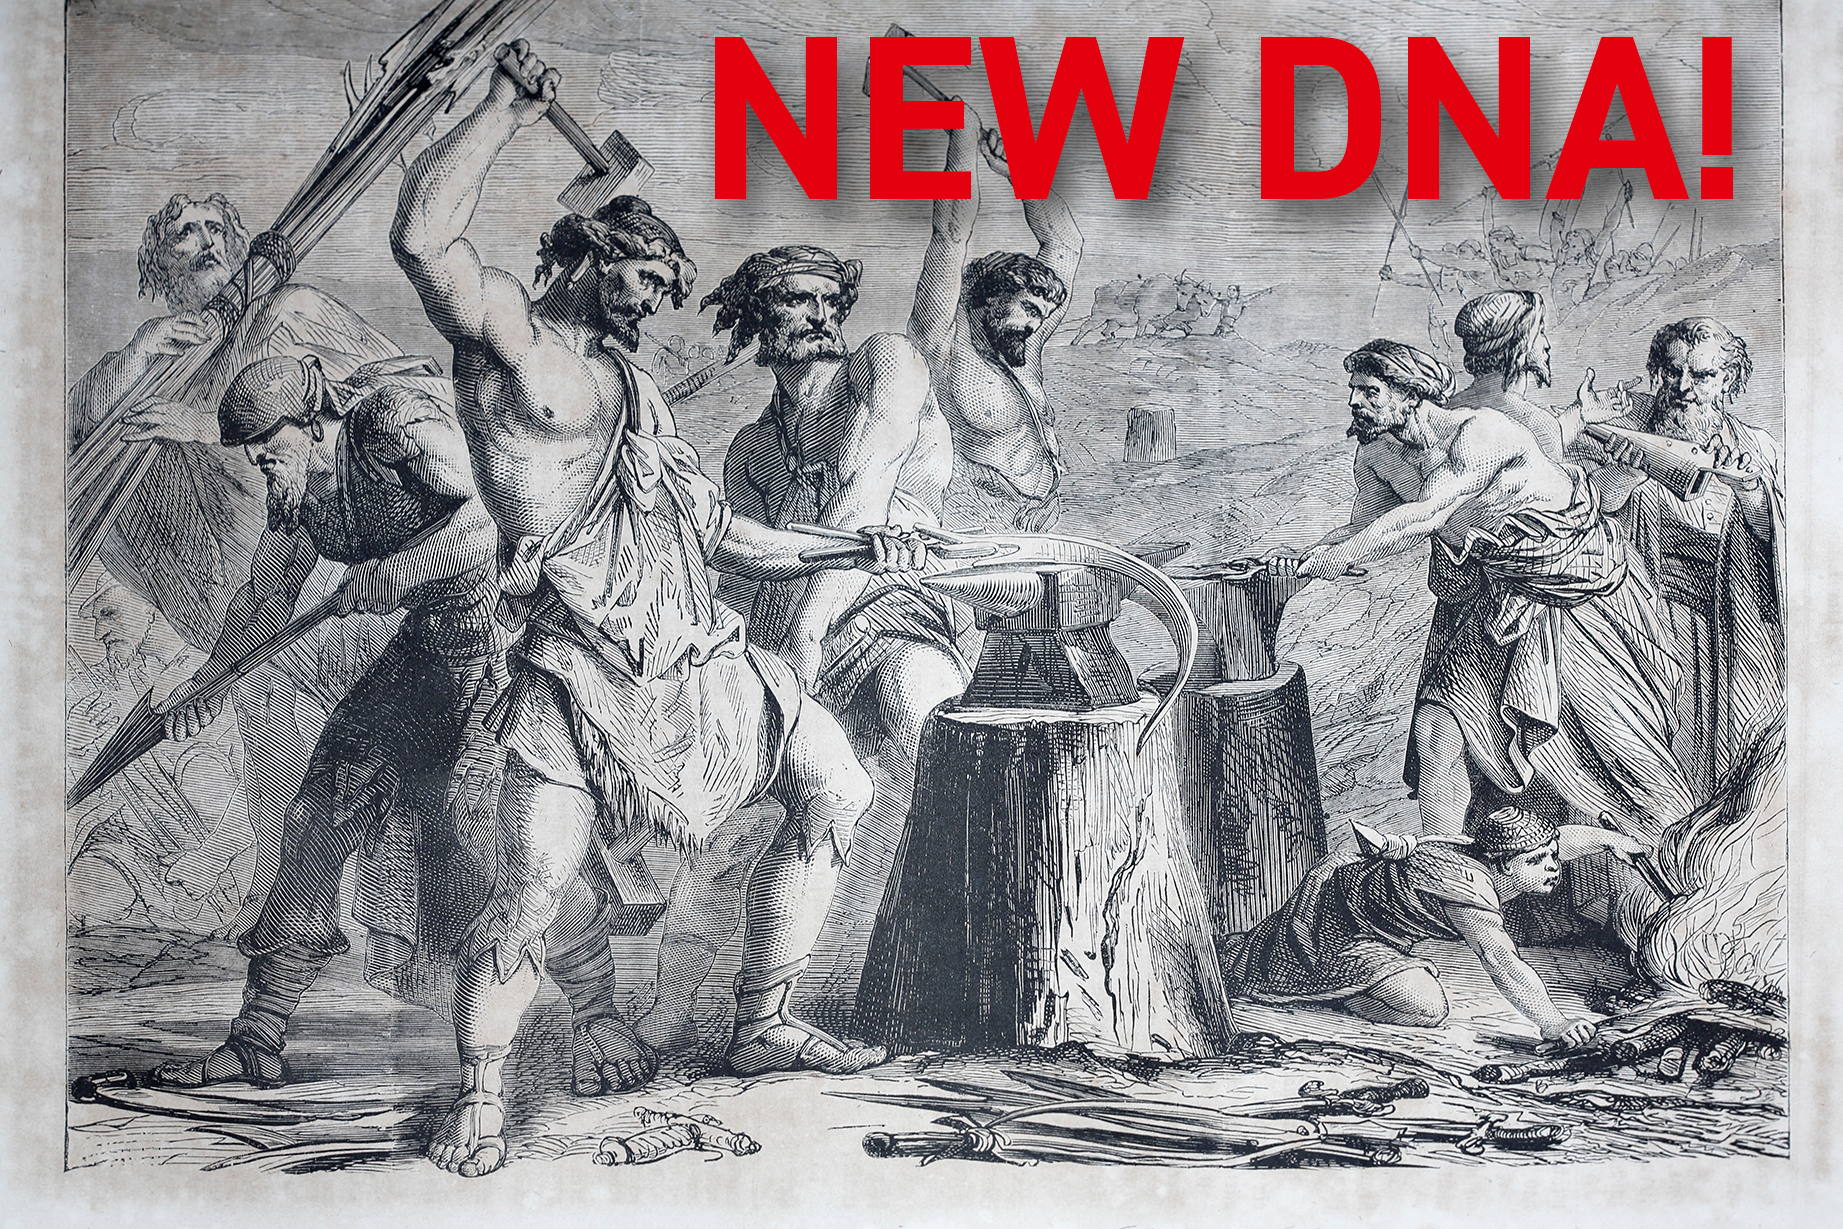 New DNA for Print: Swords to plowshares